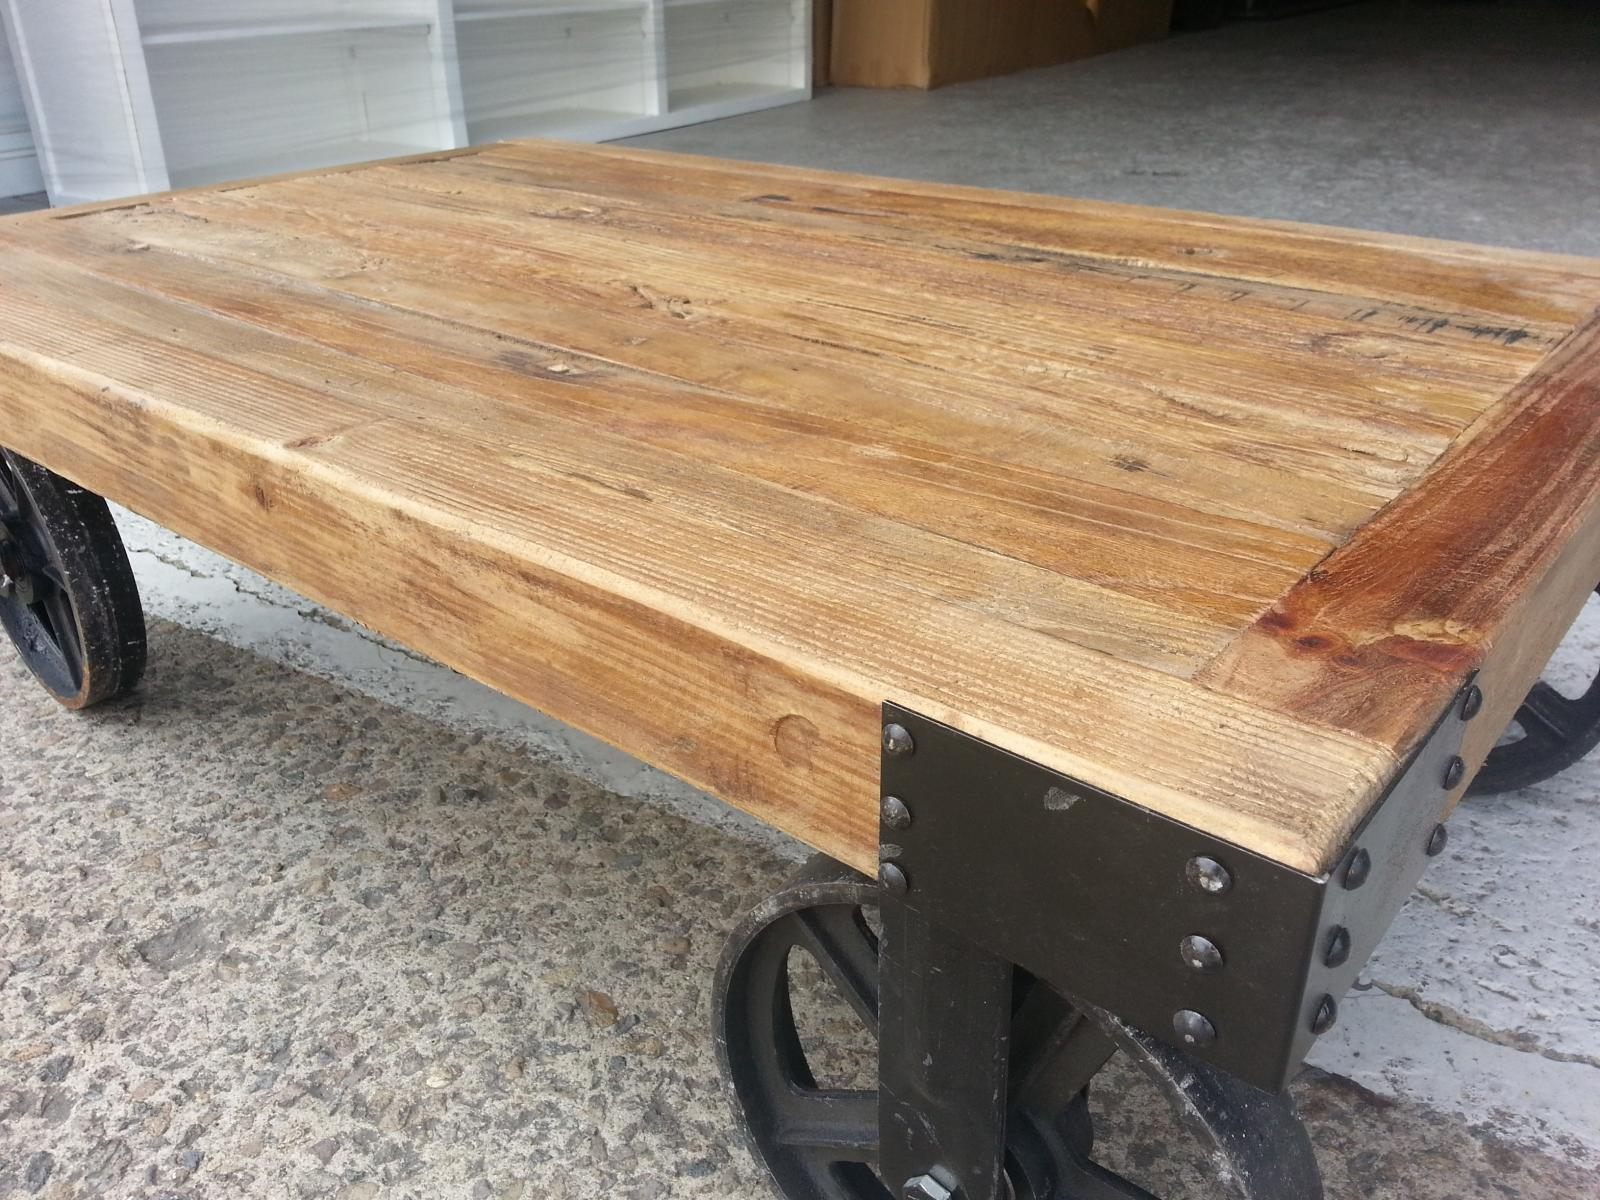 New Industrial Recycled Vintage Rustic Timber Coffee Table With Wheels Ebay